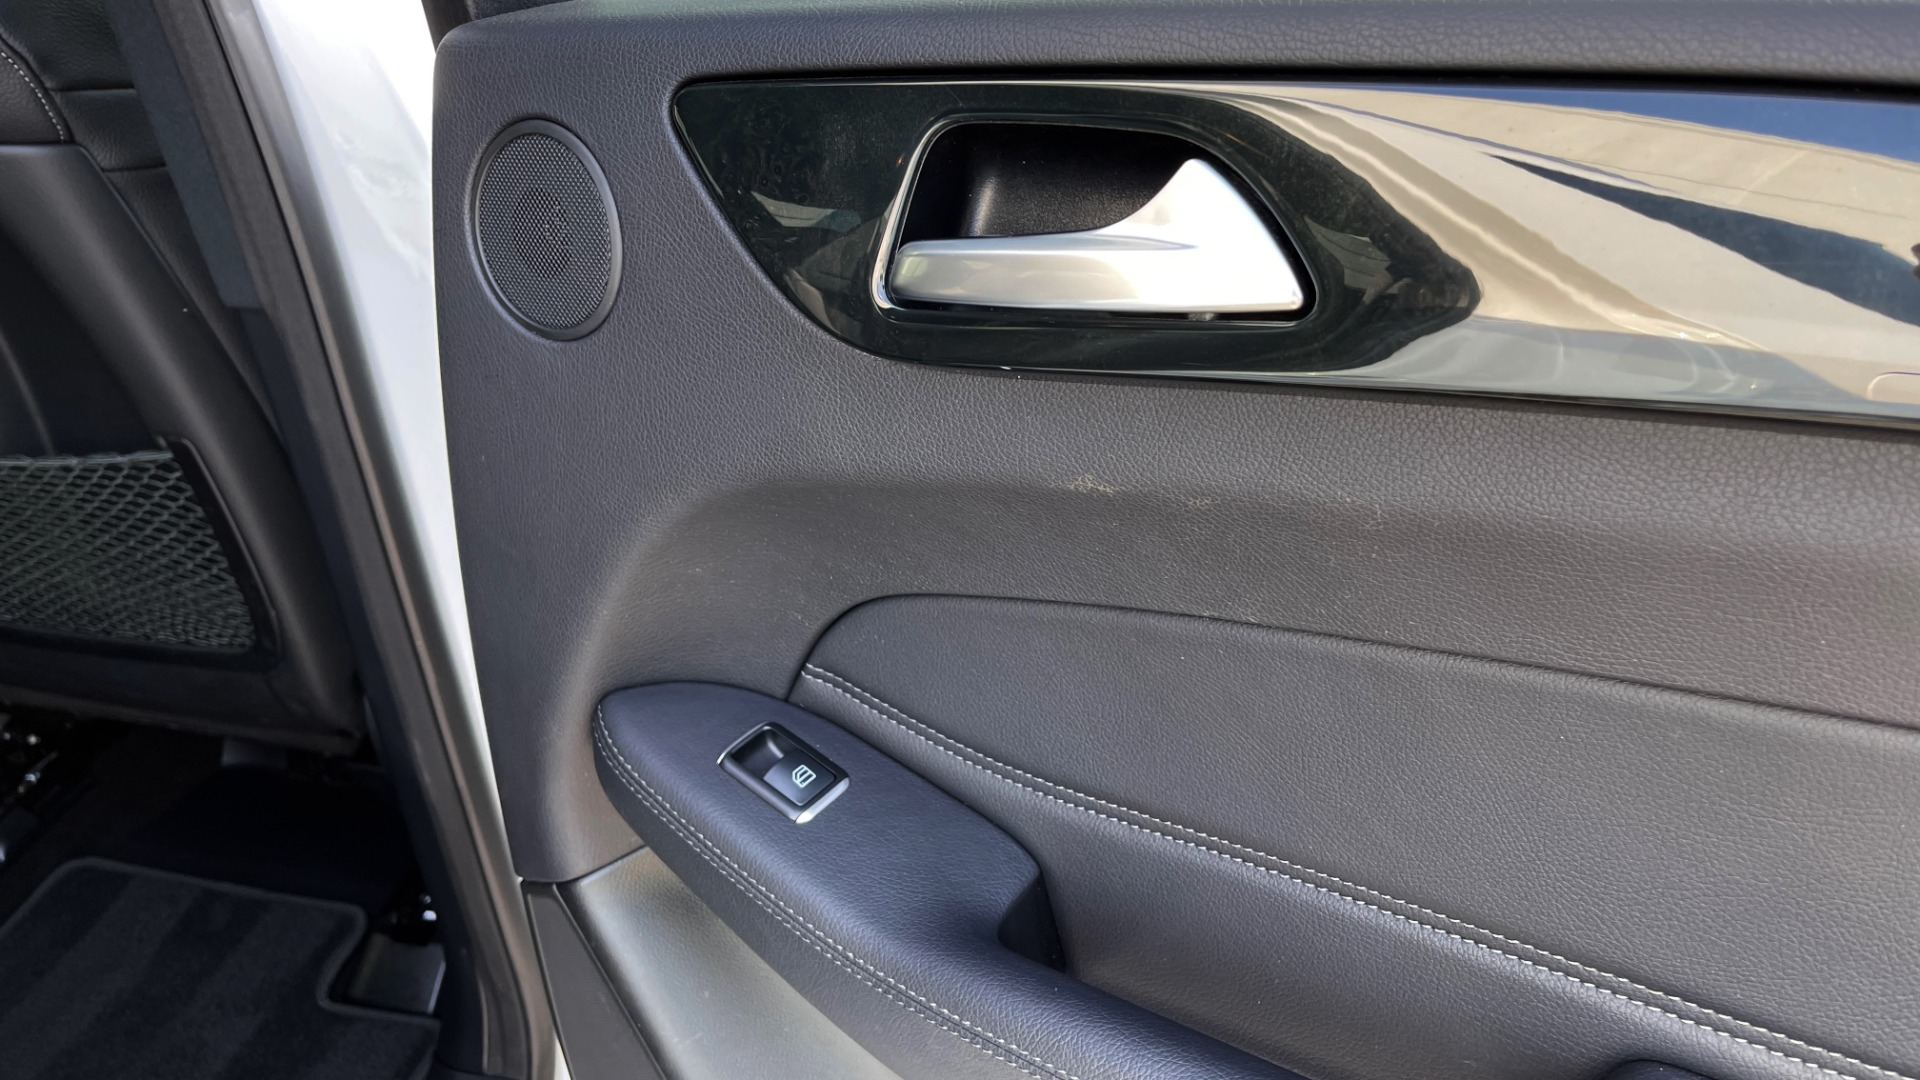 Used 2018 Mercedes-Benz GLE 350 4MATIC PREMIUM / NAV / SUNROOF / HTD STS / TRAILER HITCH / REARVIEW for sale $36,295 at Formula Imports in Charlotte NC 28227 61